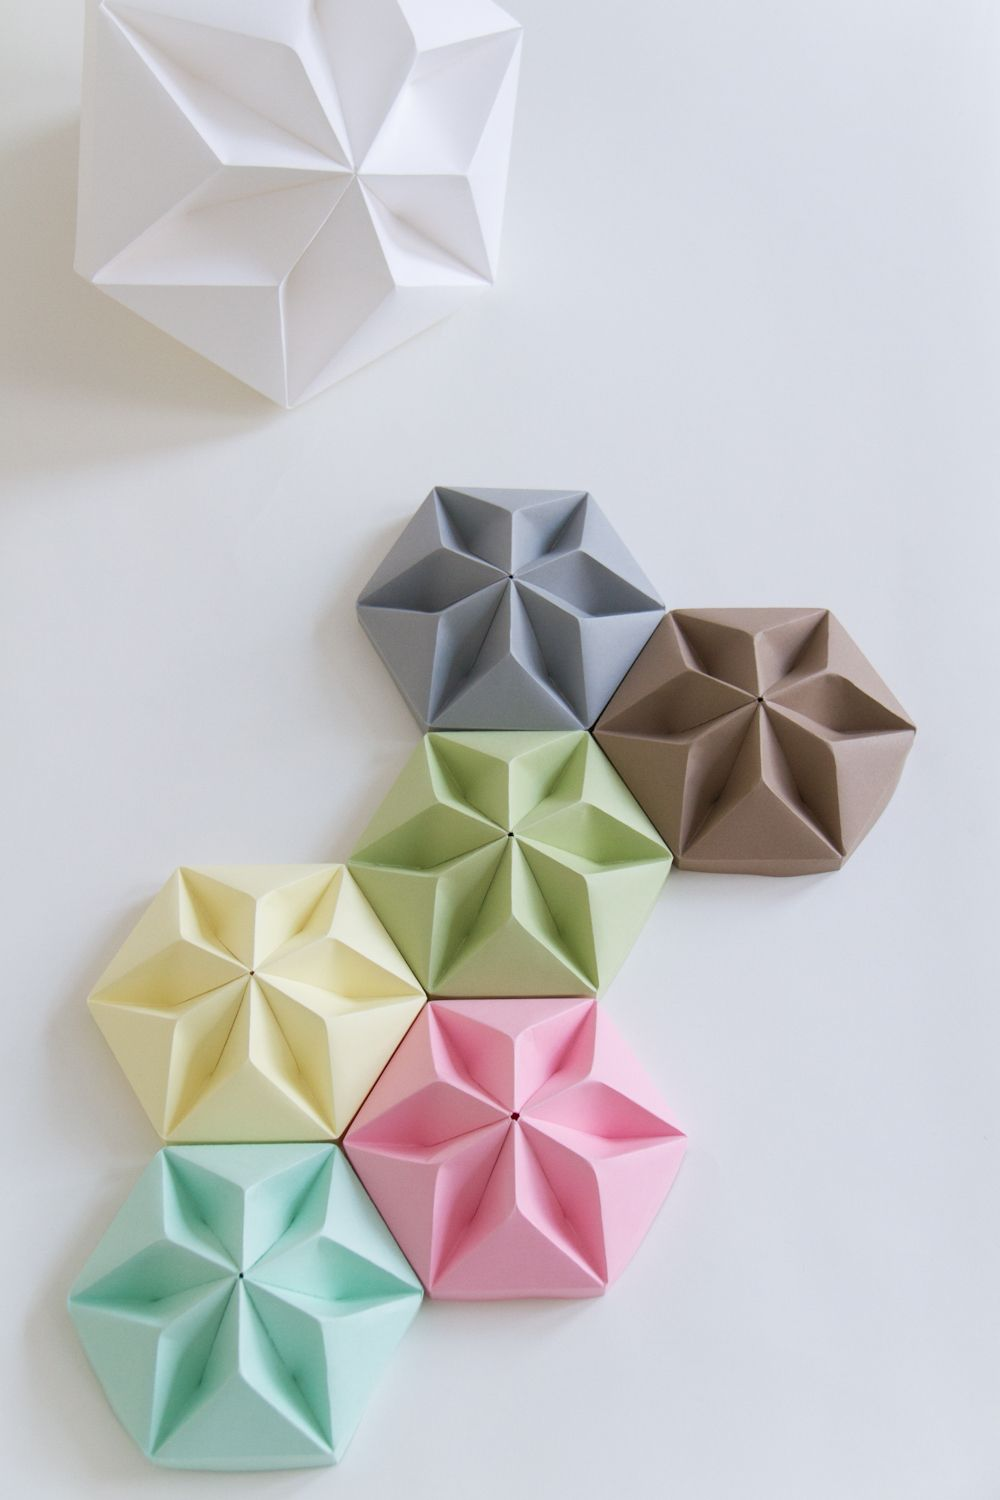 Origami The Interesting Art Of Folding Paper To Make Shapes - Kunst Aus Papier